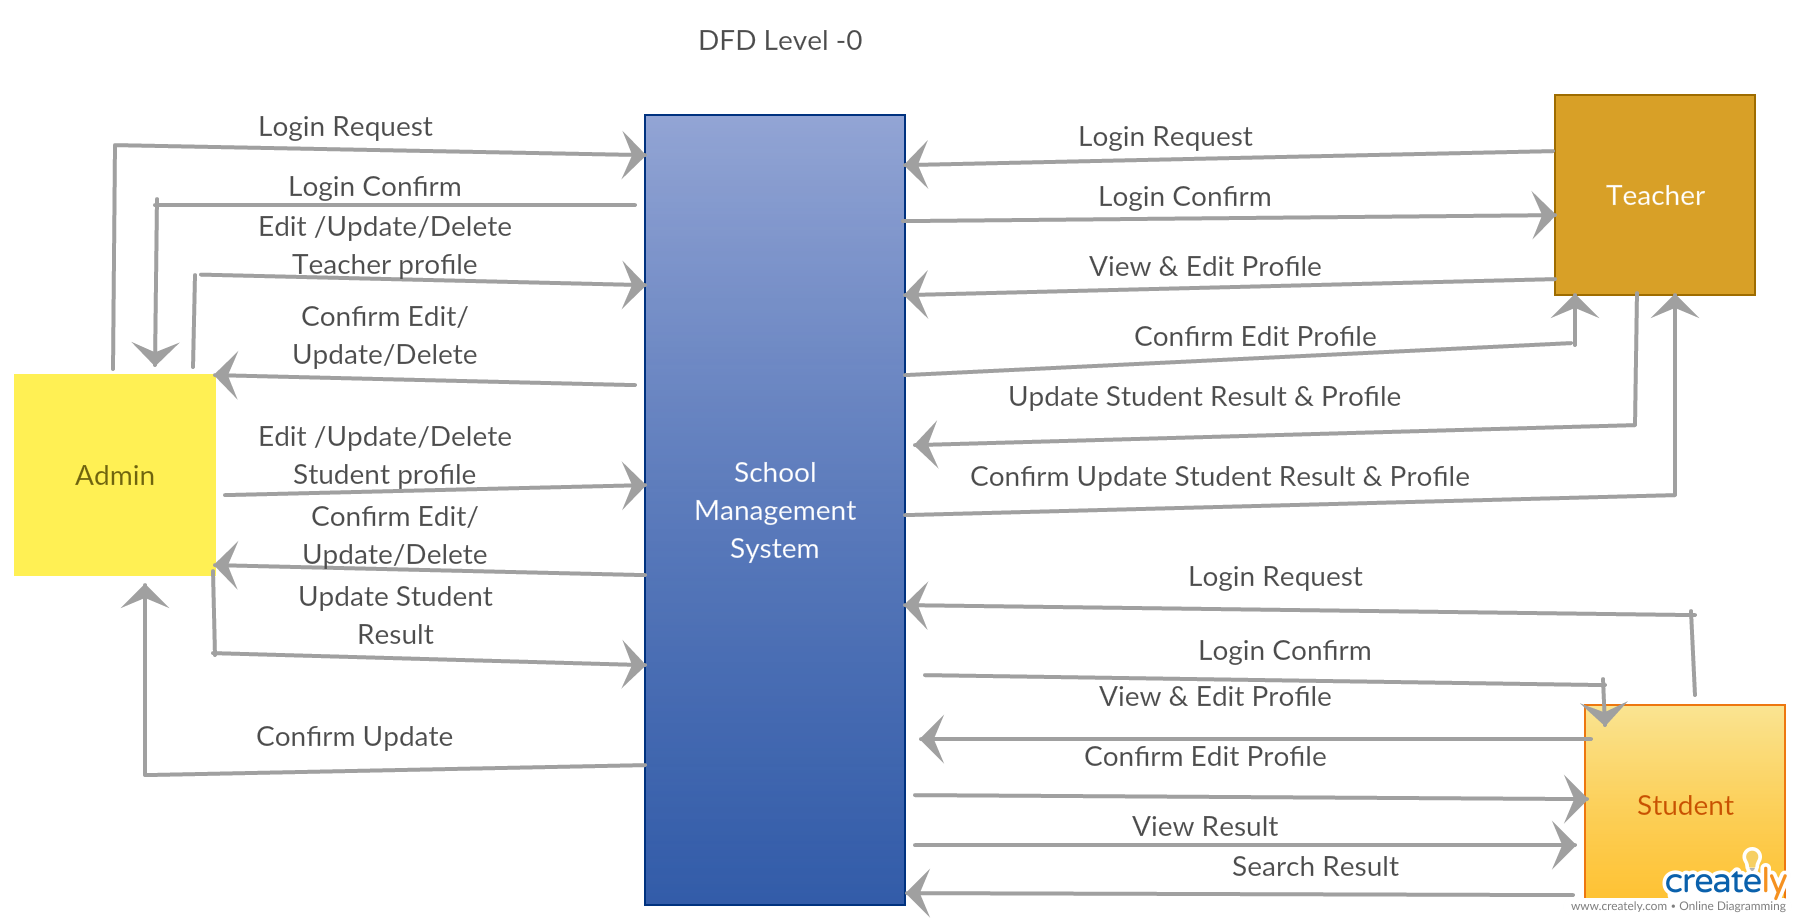 small resolution of dfd level 0 of school management system you can edit this template and create your own diagram creately diagrams can be exported and added to word